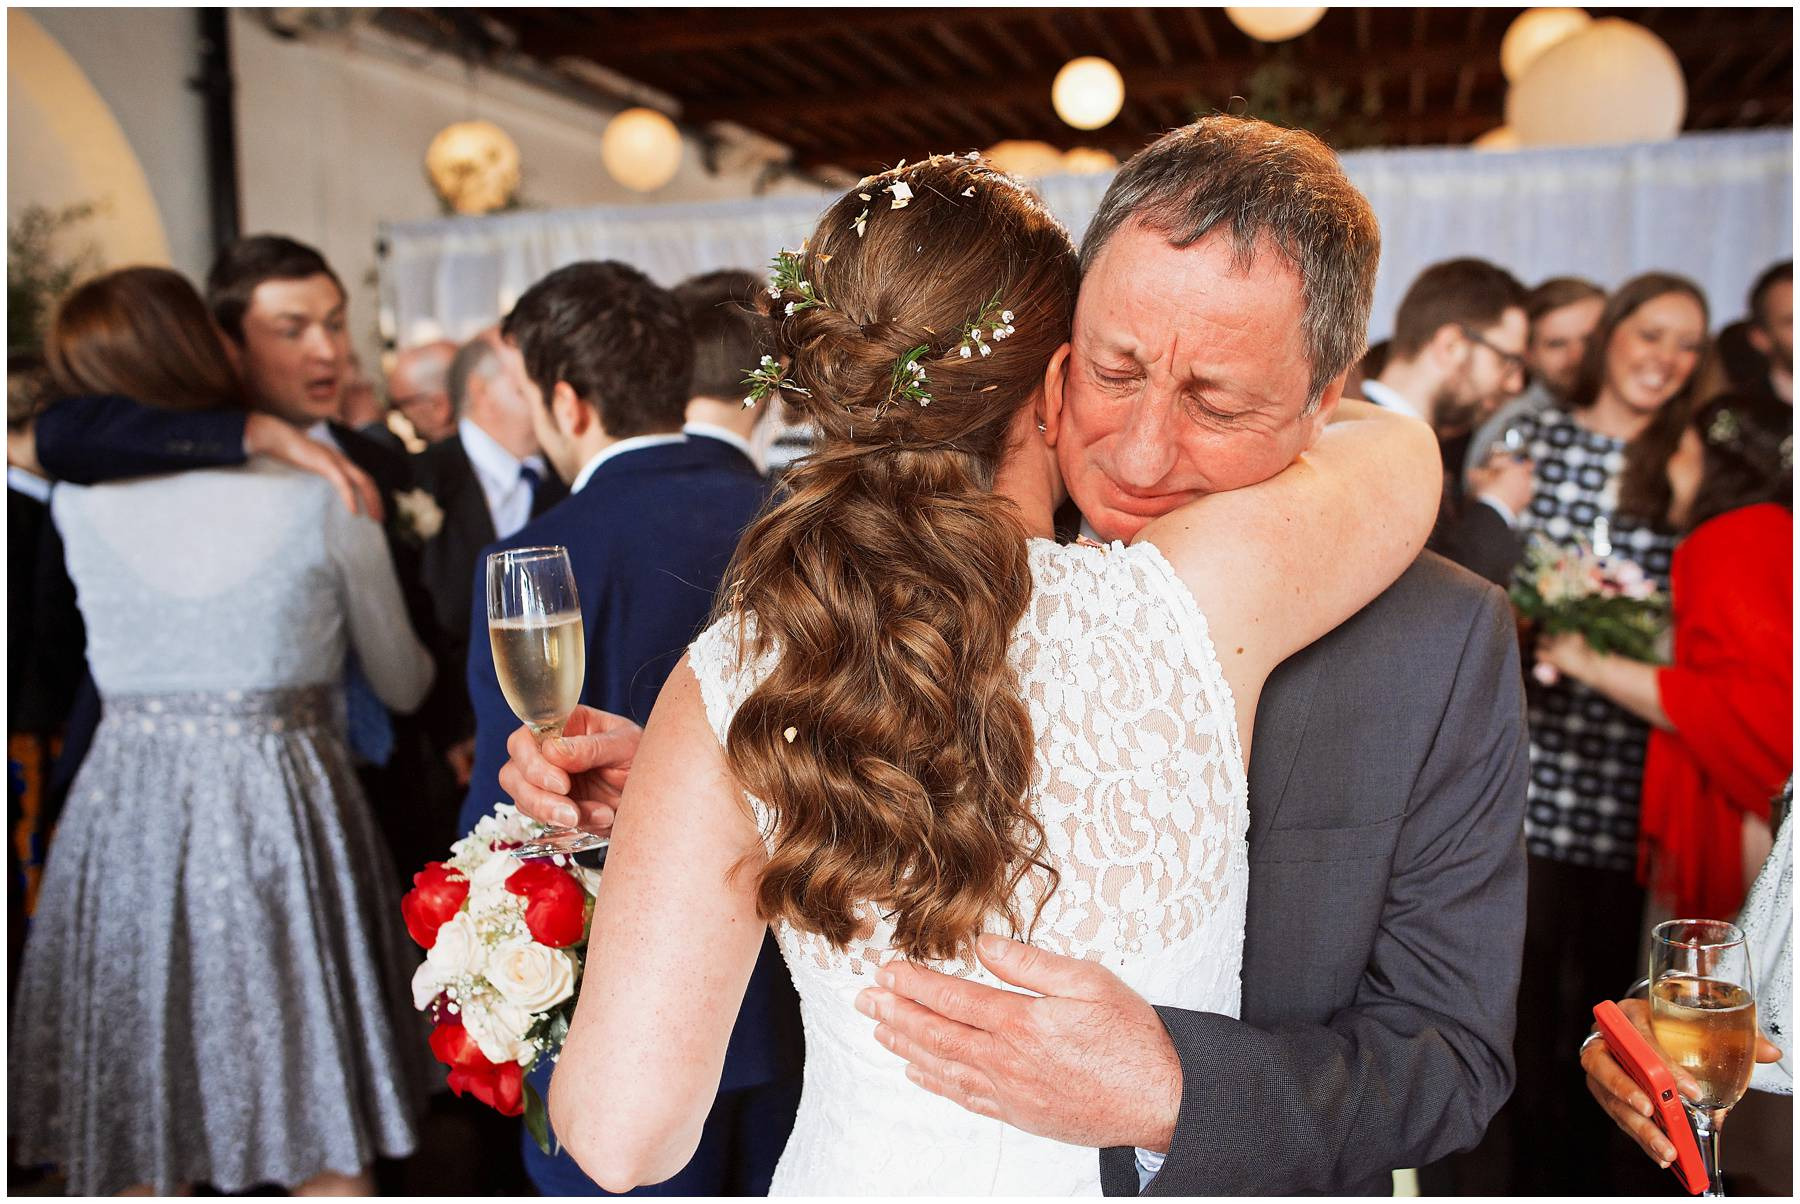 Emotional moment at Trinity Buoy Wharf Wedding